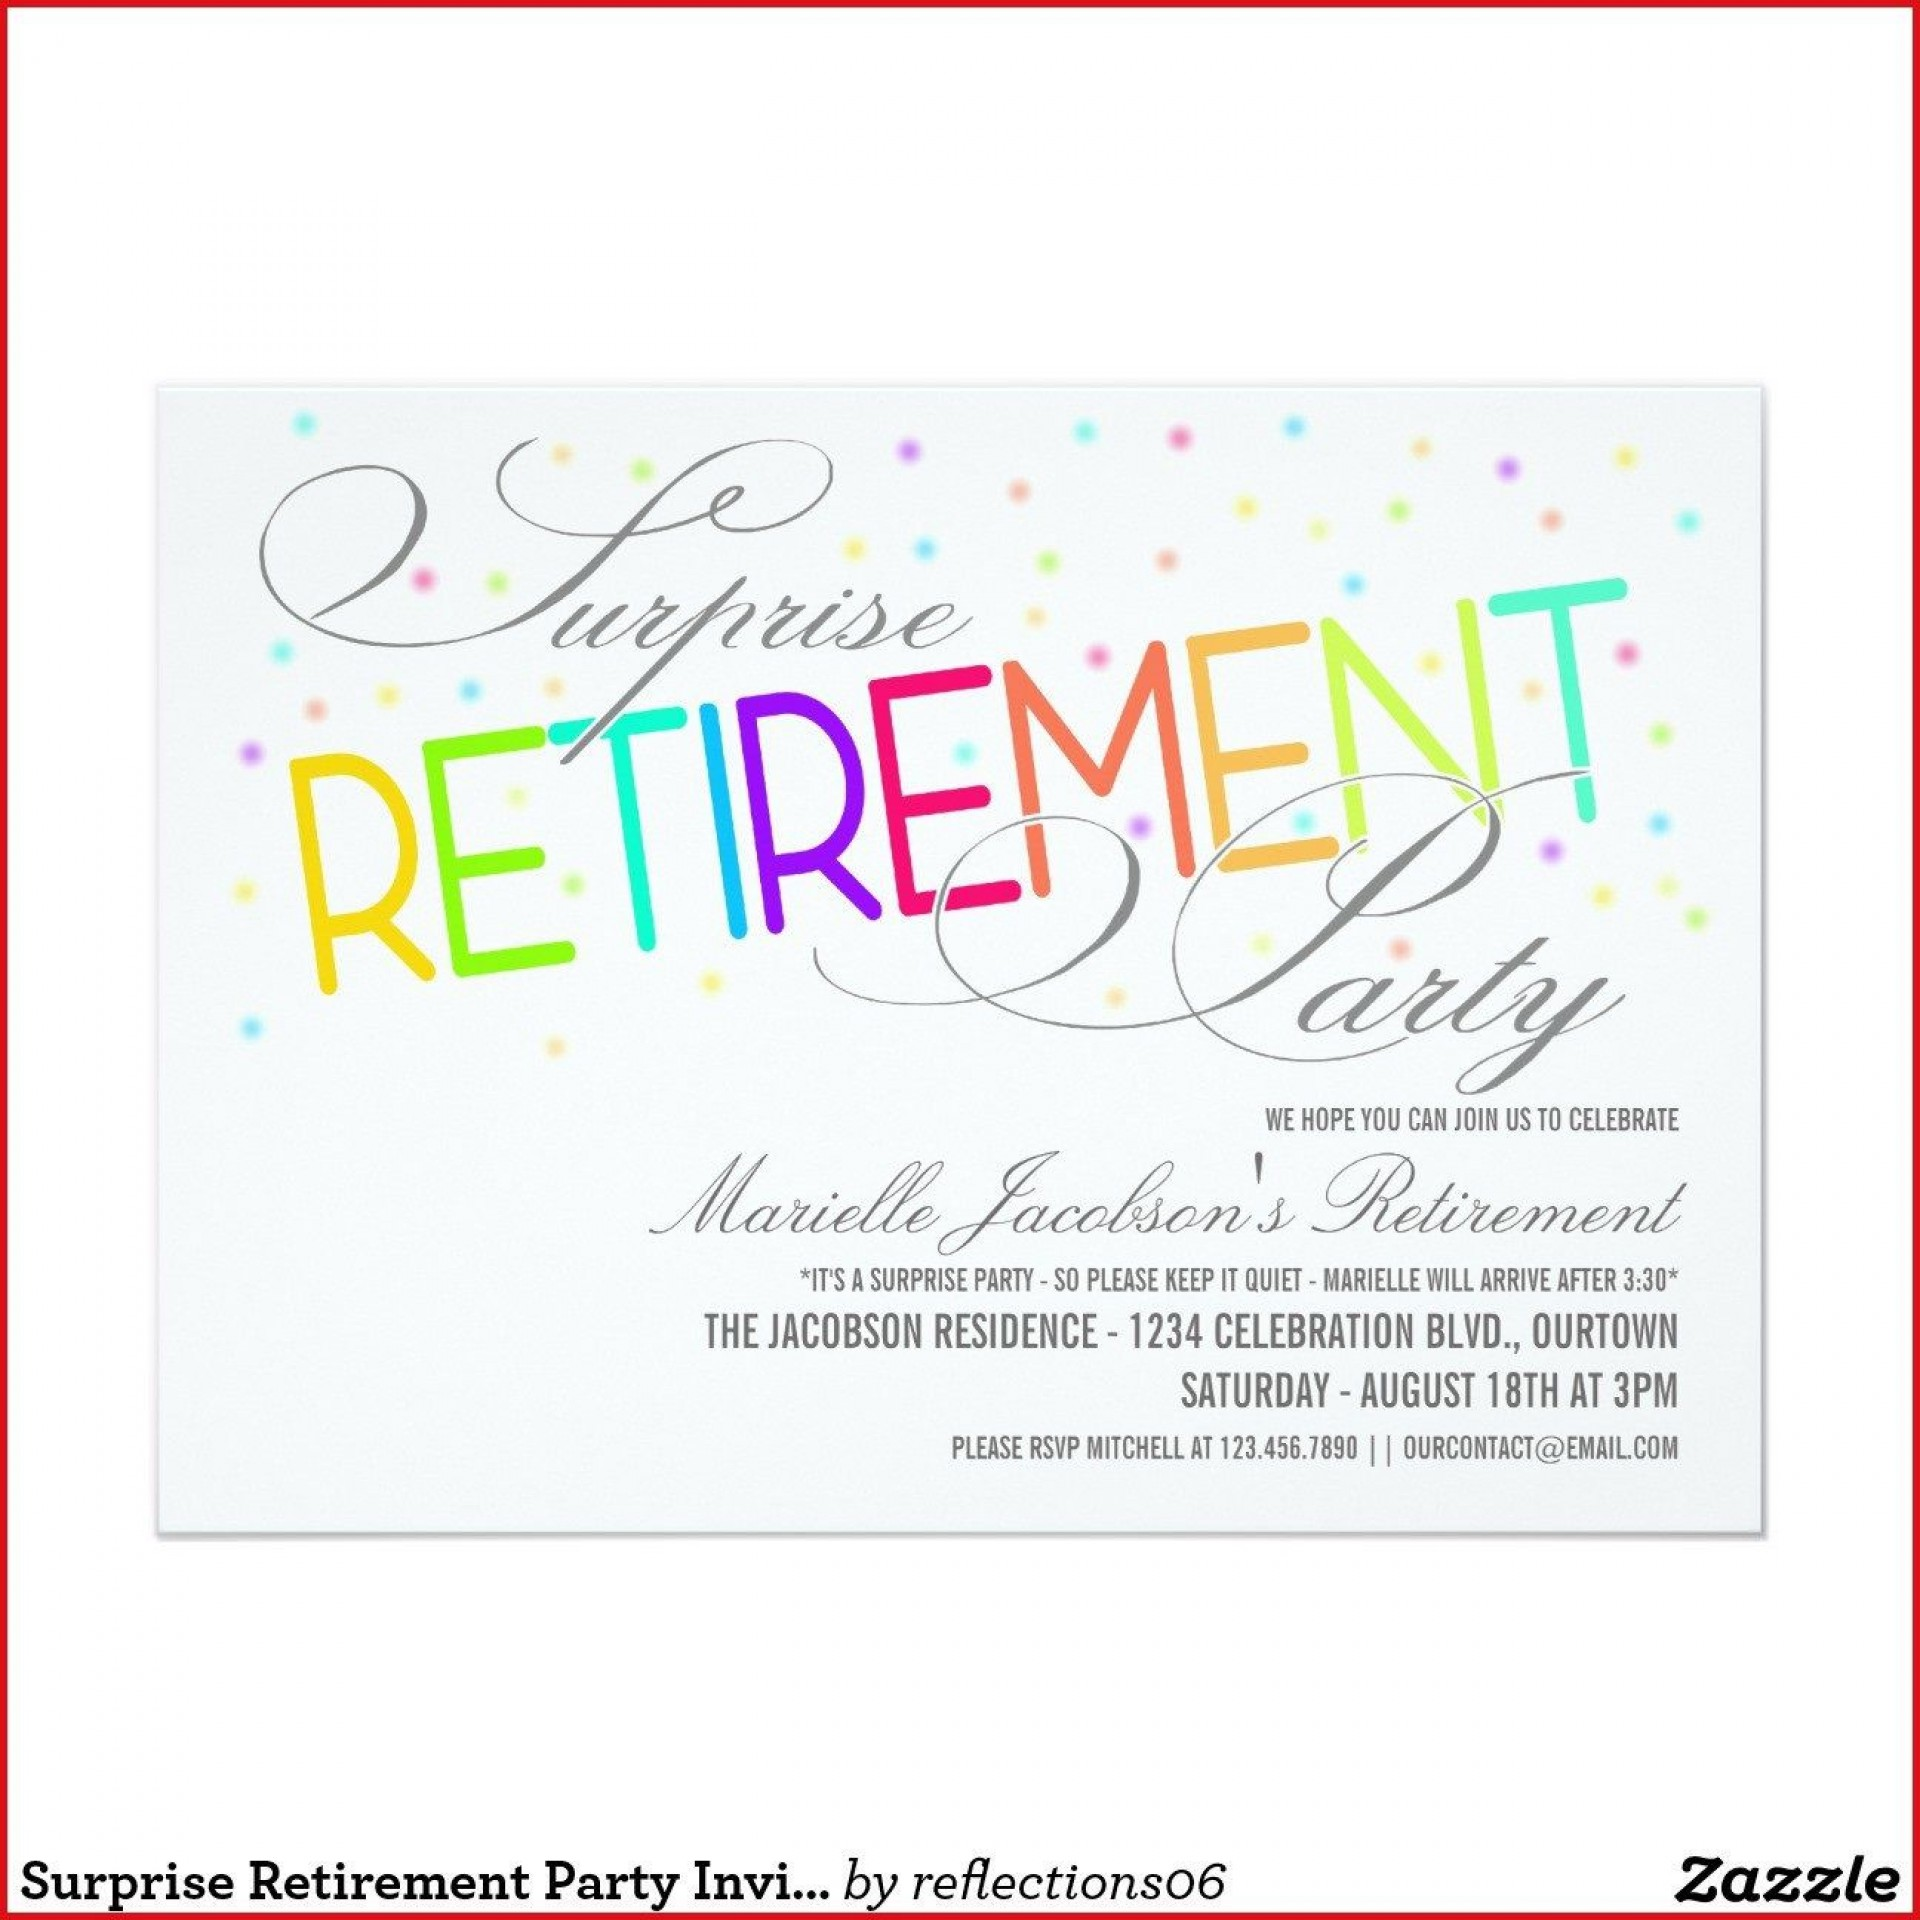 005 Fascinating Retirement Party Invitation Template Free Word Sample  M1920